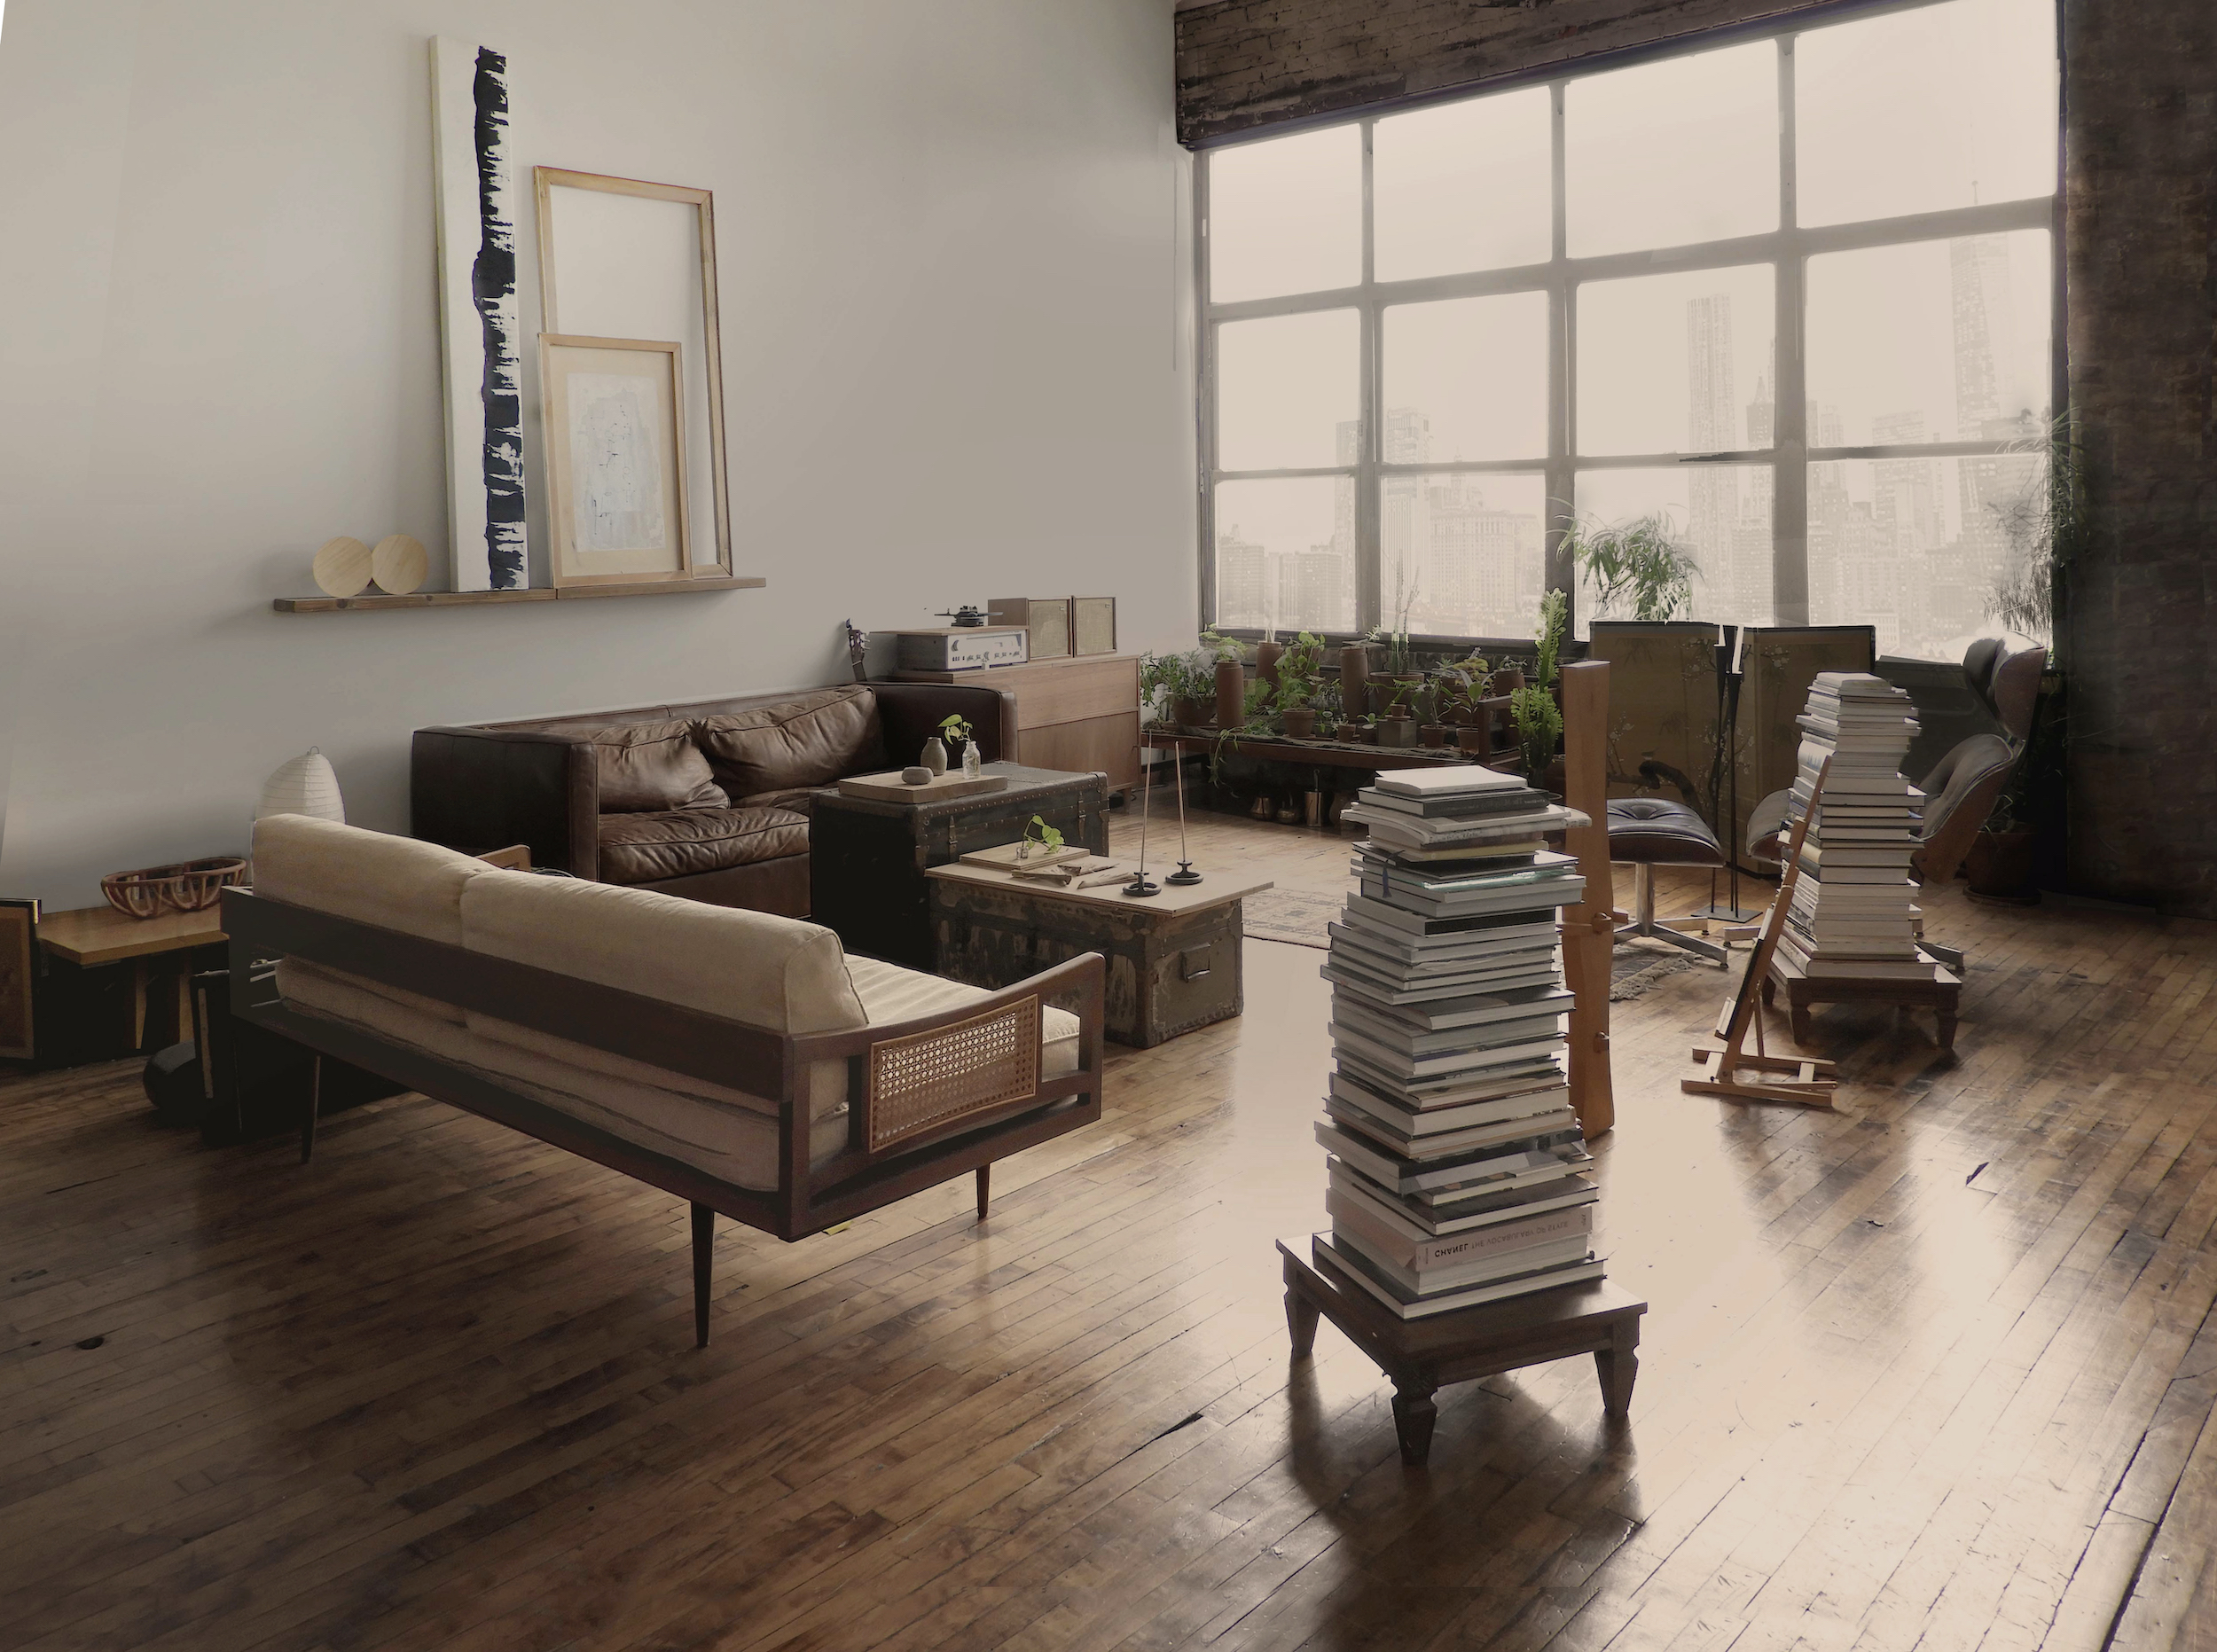 Scene Stealers: Moody Vignettes in the Brooklyn Loft of the Founders of Ridge House